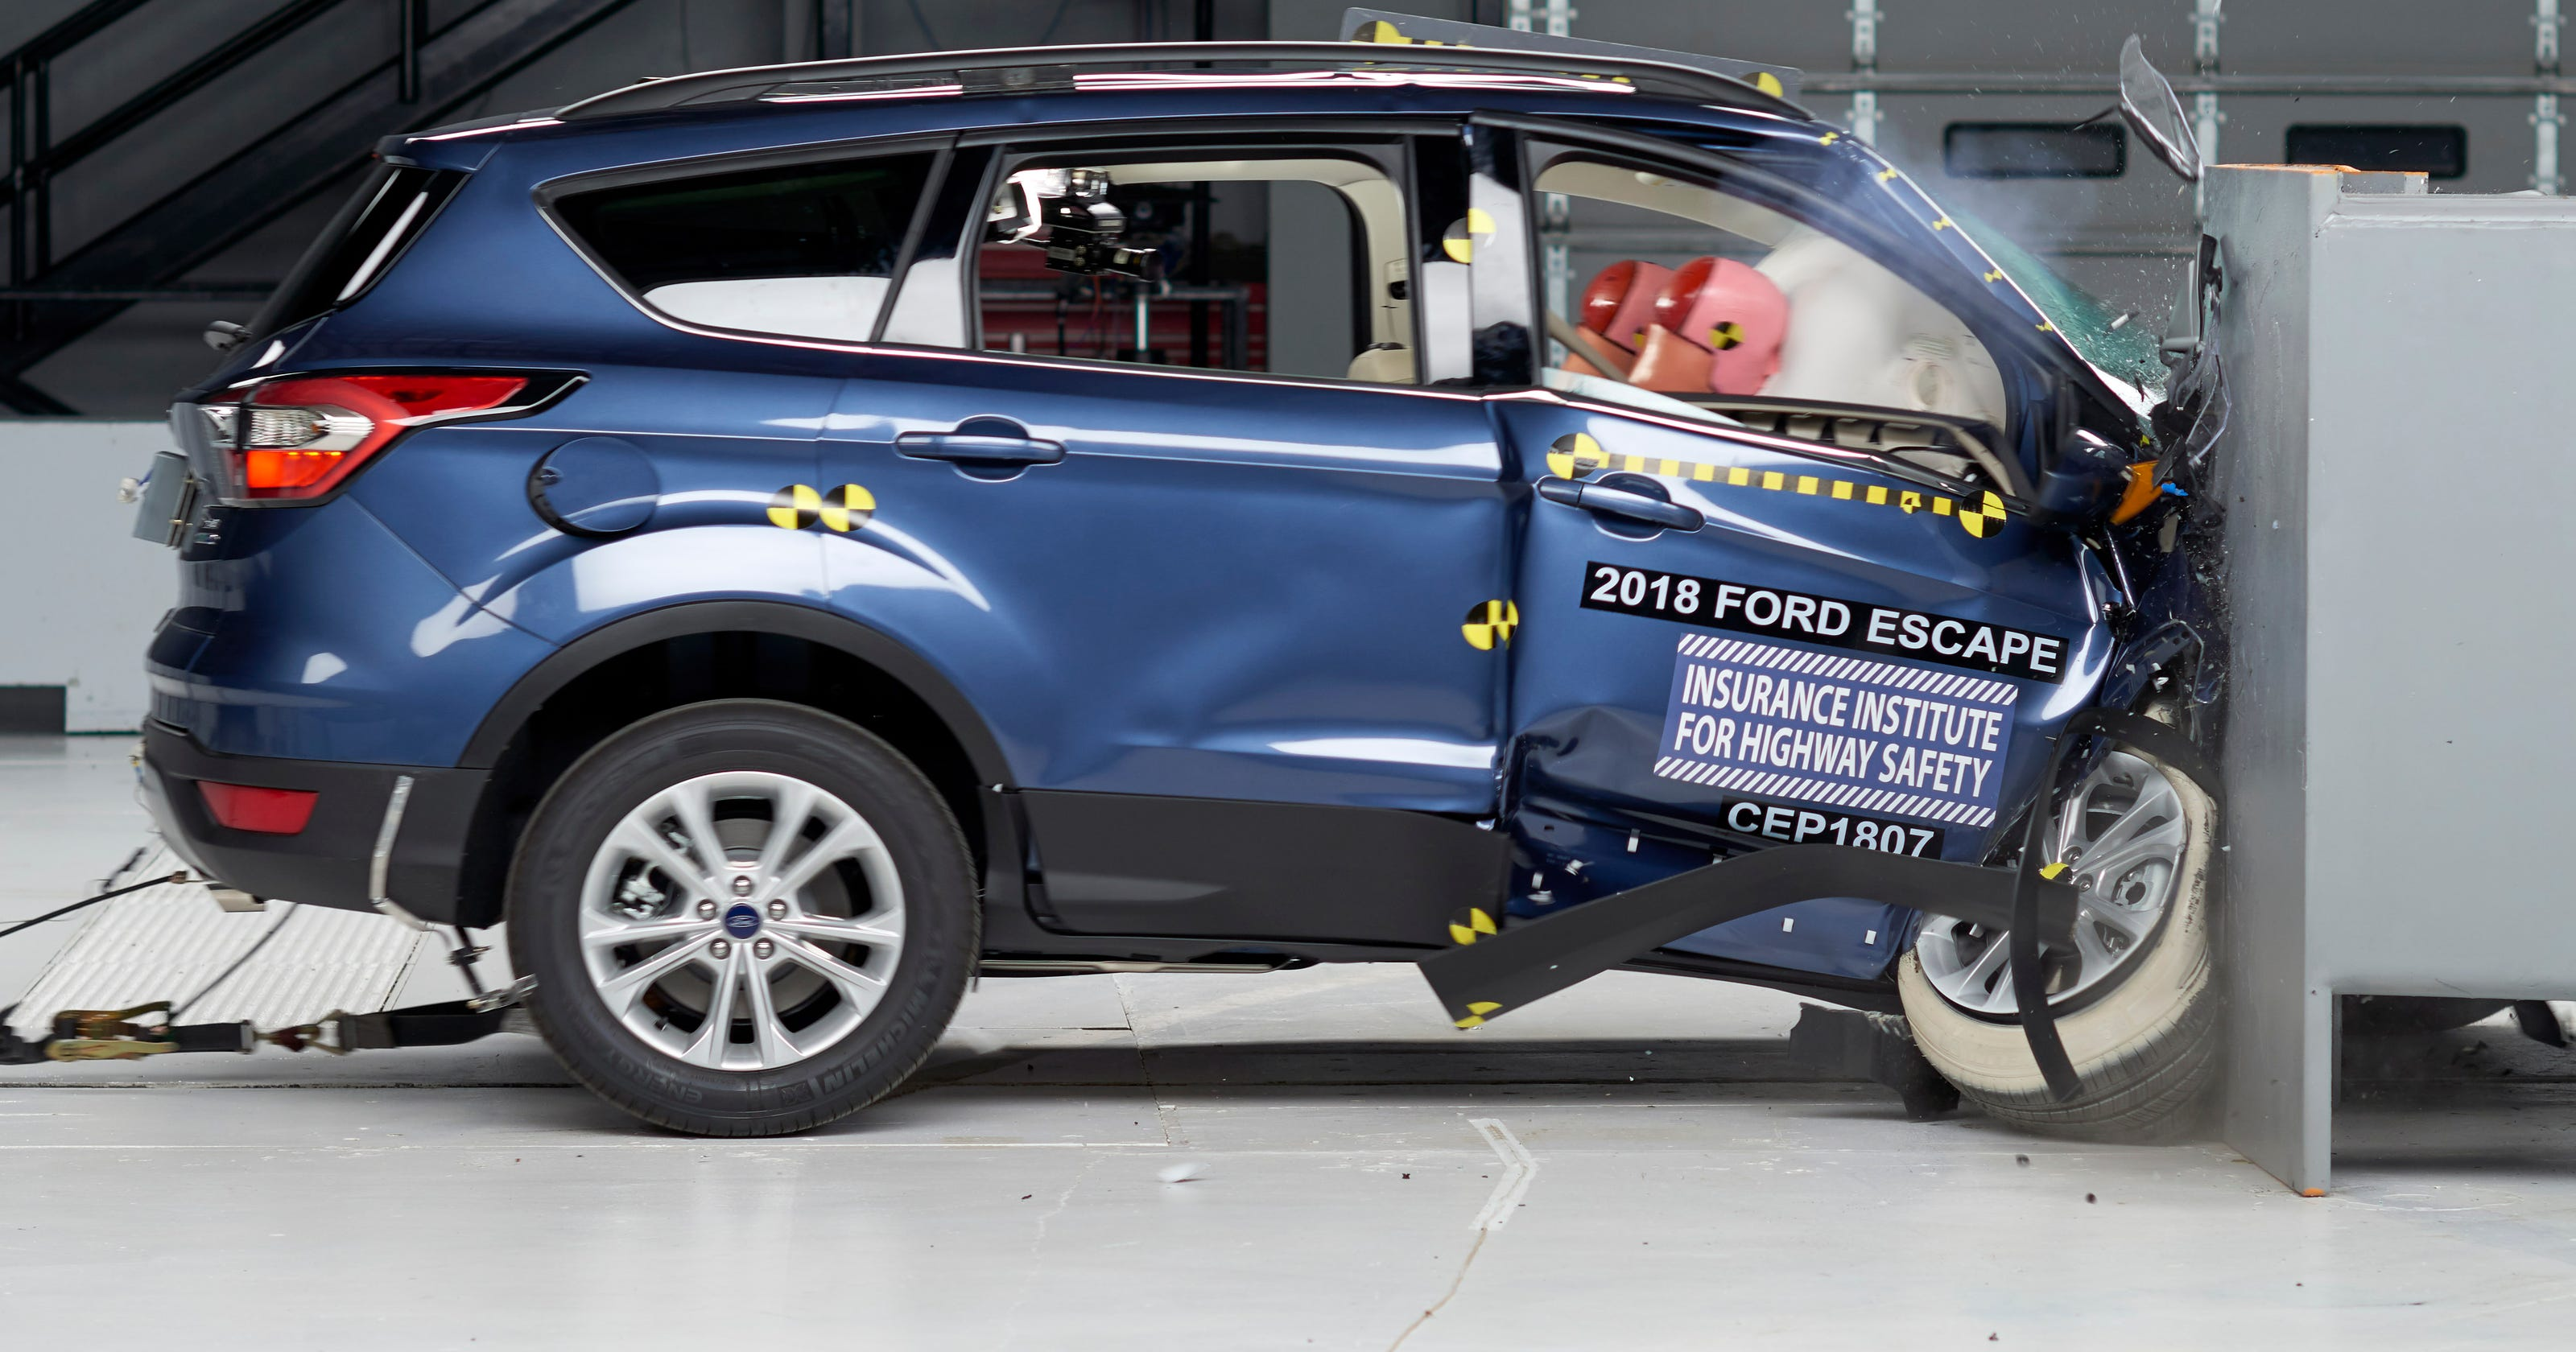 Ford Escape rated 'poor' in IIHS crash tests of 7 smaller SUVs